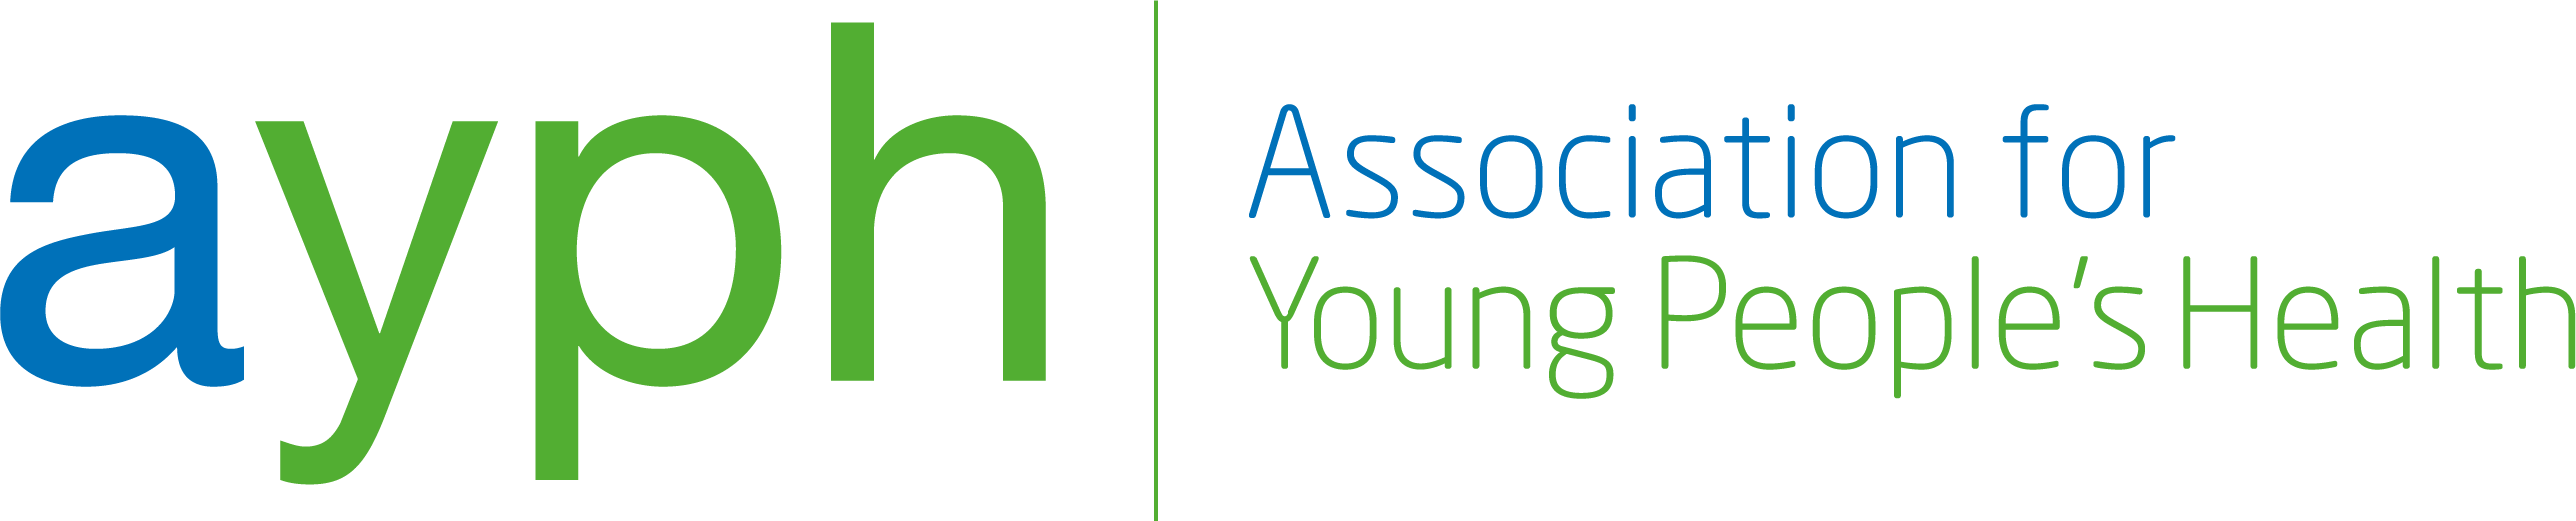 Association for Young People's Health